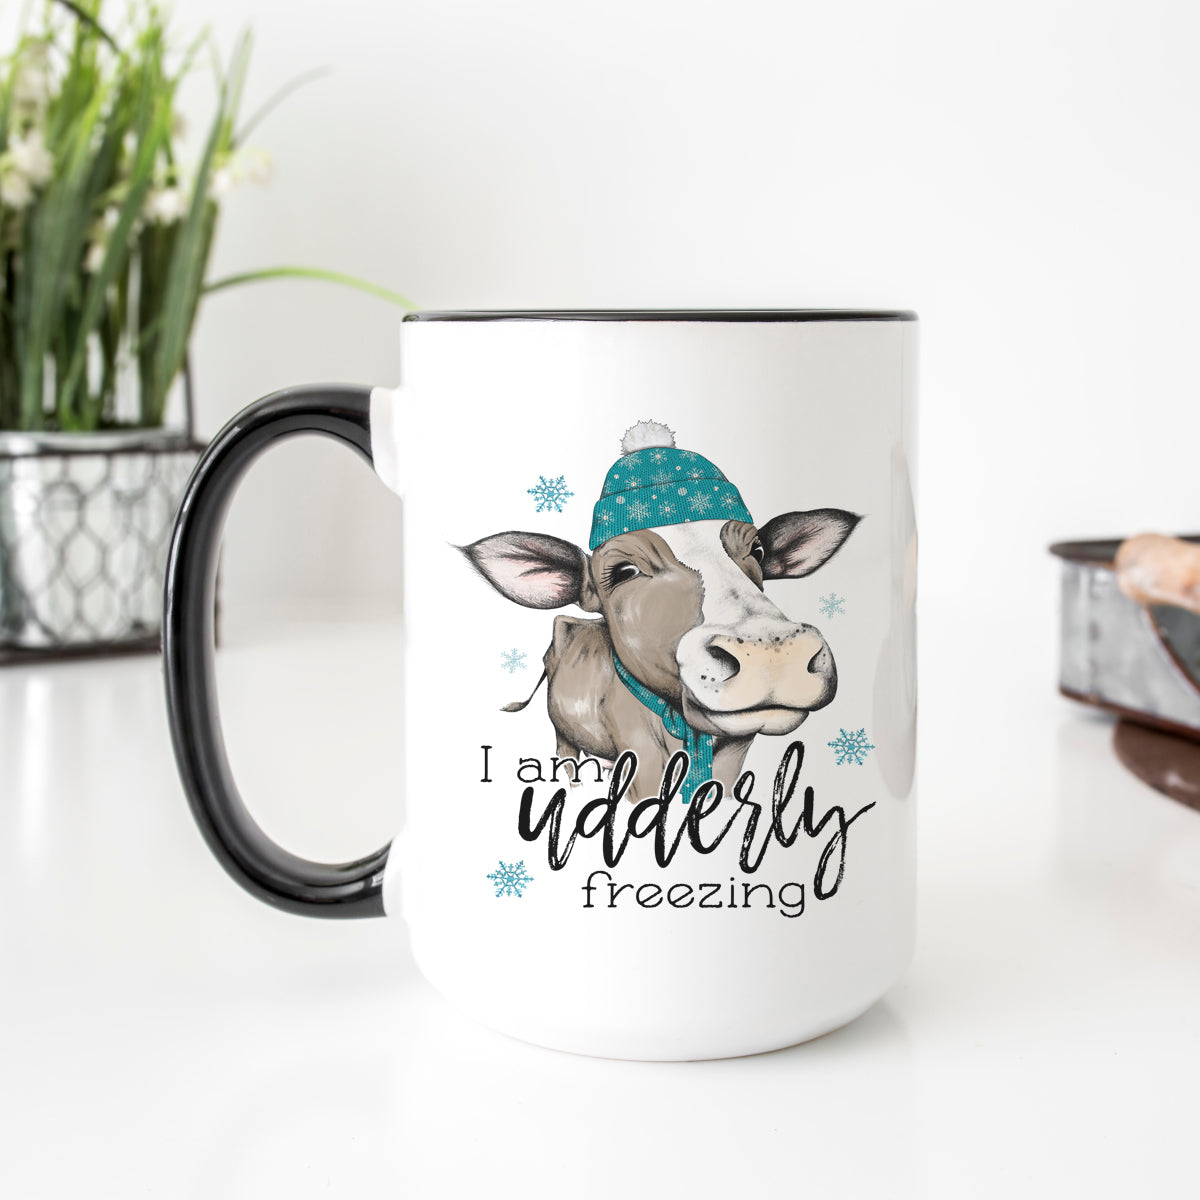 Udderly Freezing Cow Mug